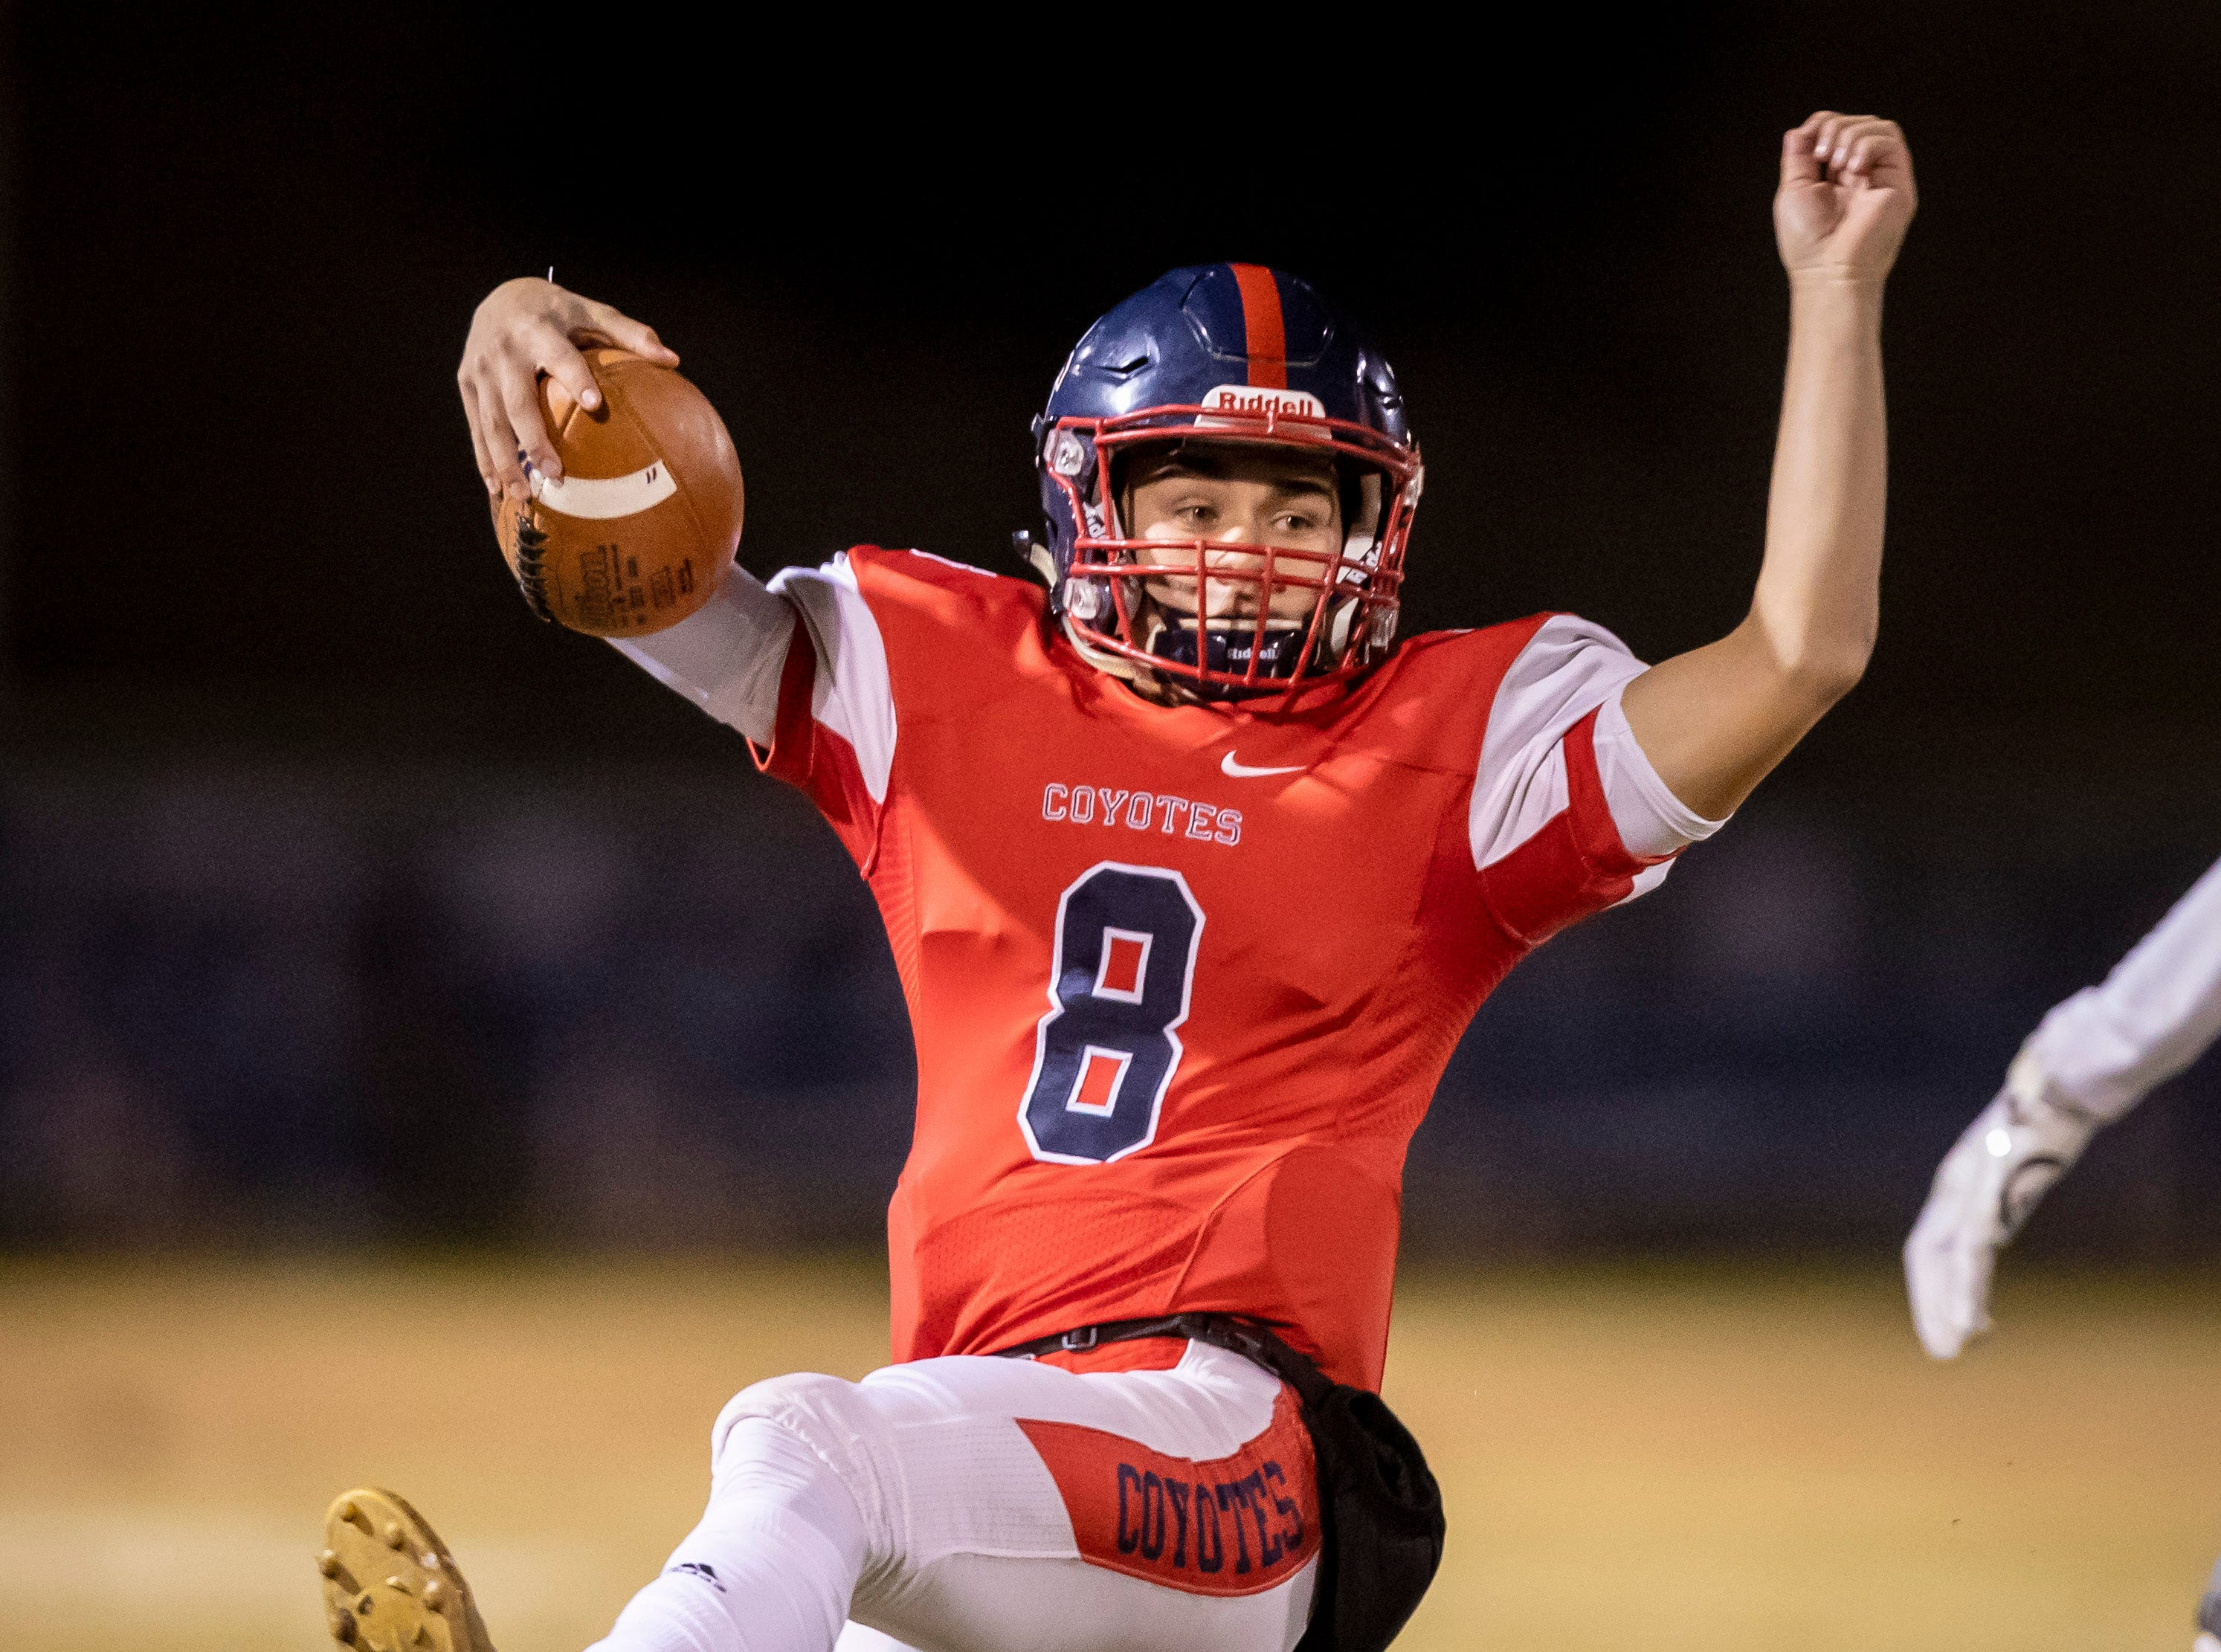 Junior quarterback Jonathan Morris (8) of the Centennial Coyotes slides against the Higley Knights in the 5A semi-finals at Willow Canyon High School on Friday, November 16, 2018 in Surprise, Arizona. #azhsfb